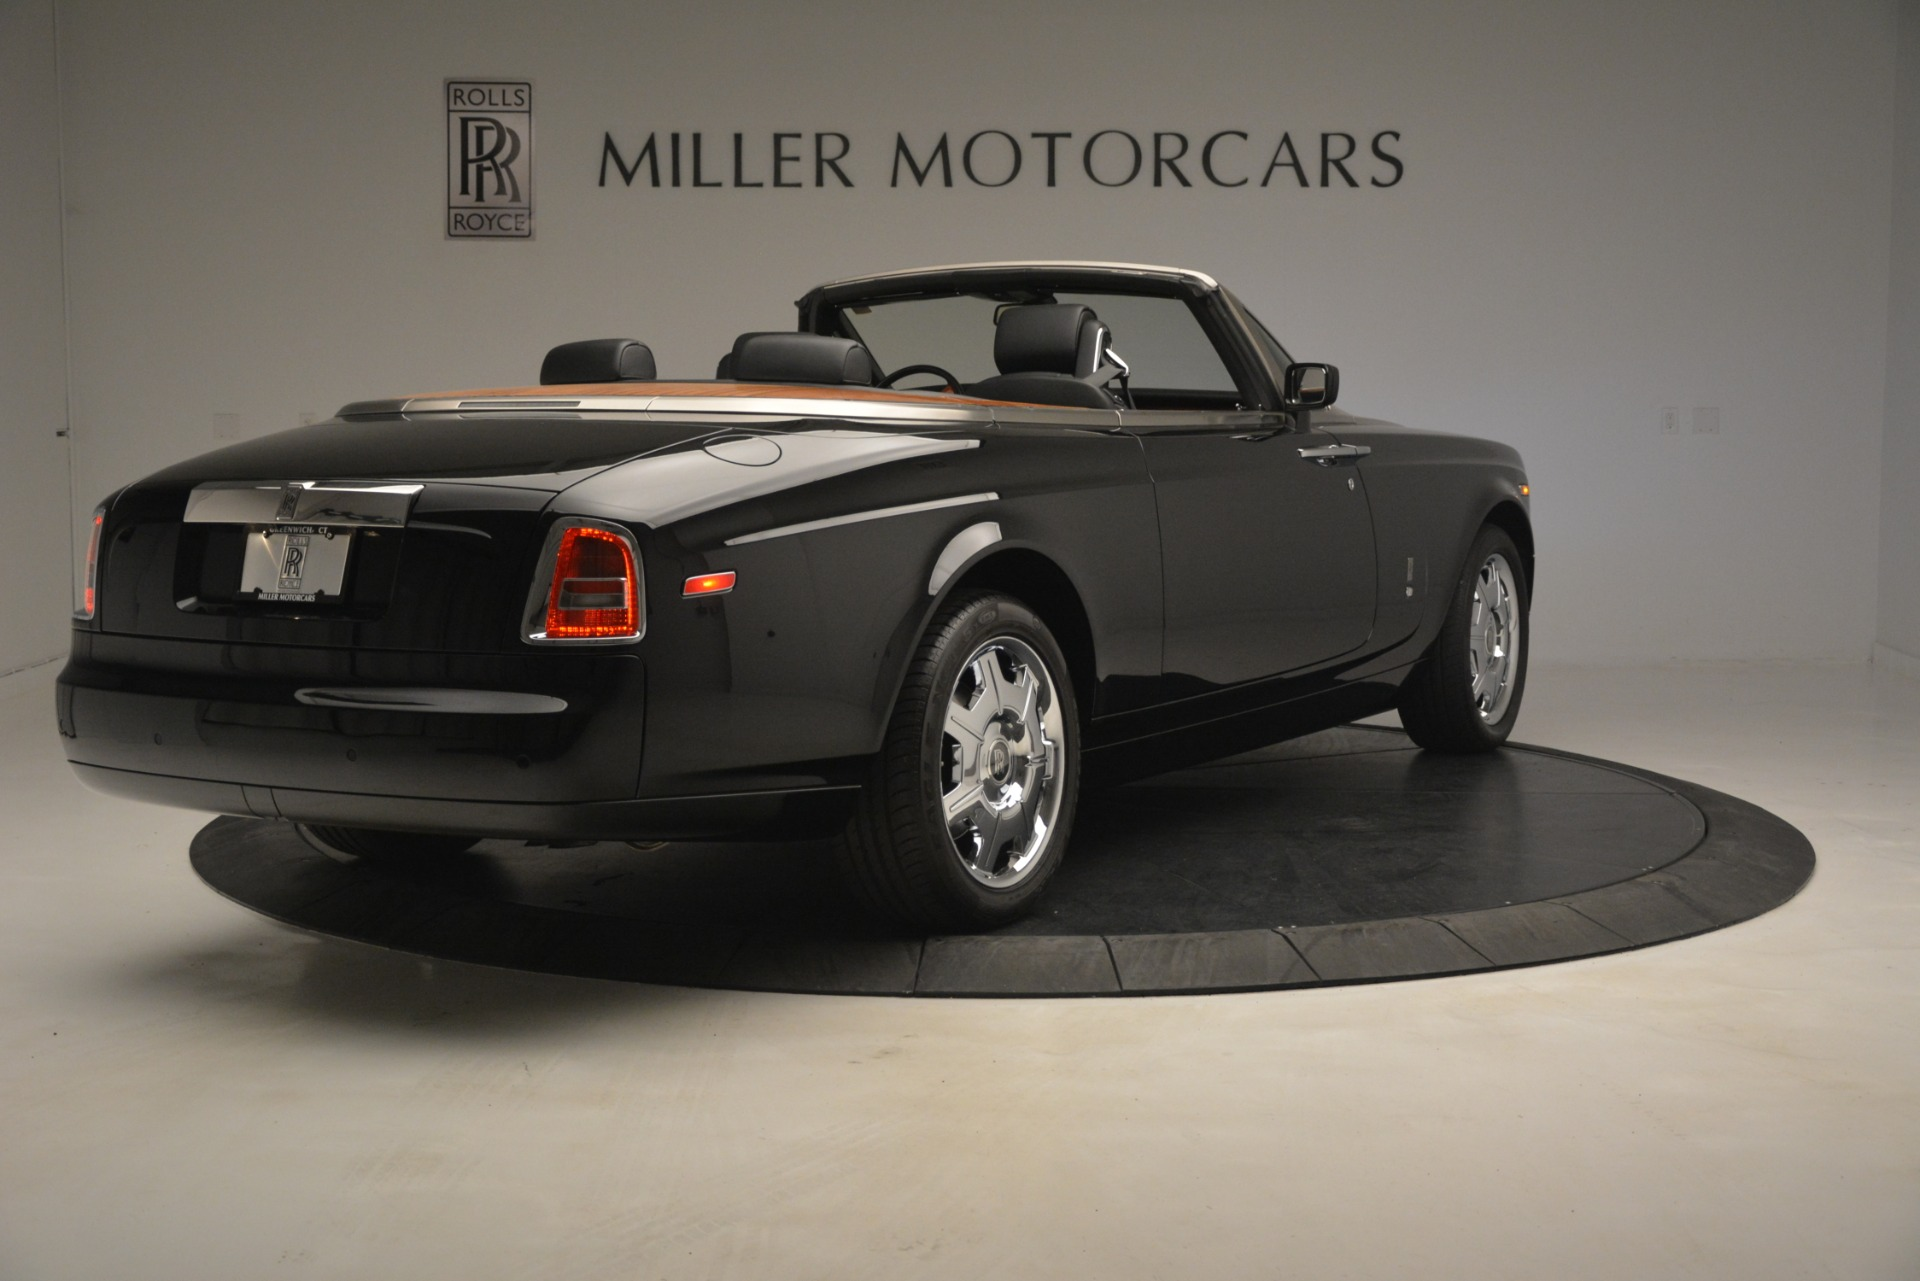 Used 2008 Rolls-Royce Phantom Drophead Coupe  For Sale In Greenwich, CT 3000_p11